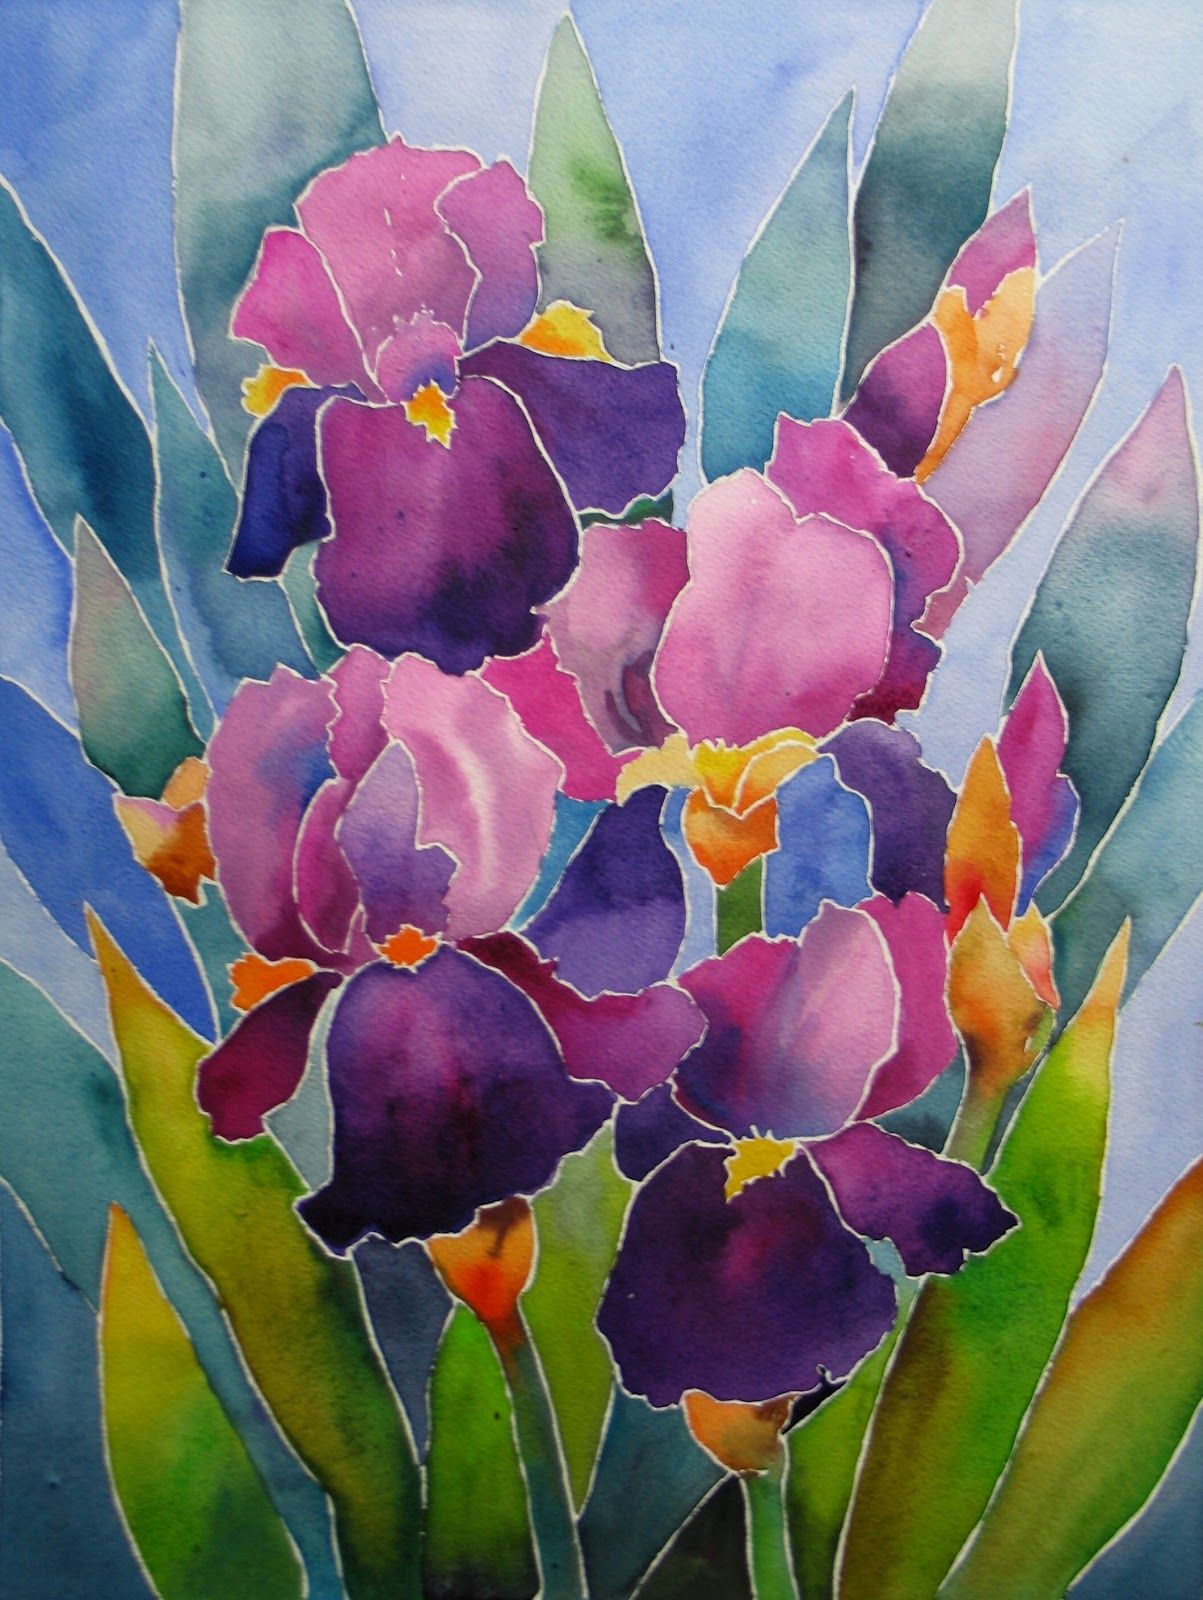 Stained+Glass+Iris+Watercolor.jpg 1,203×1,600 pixels